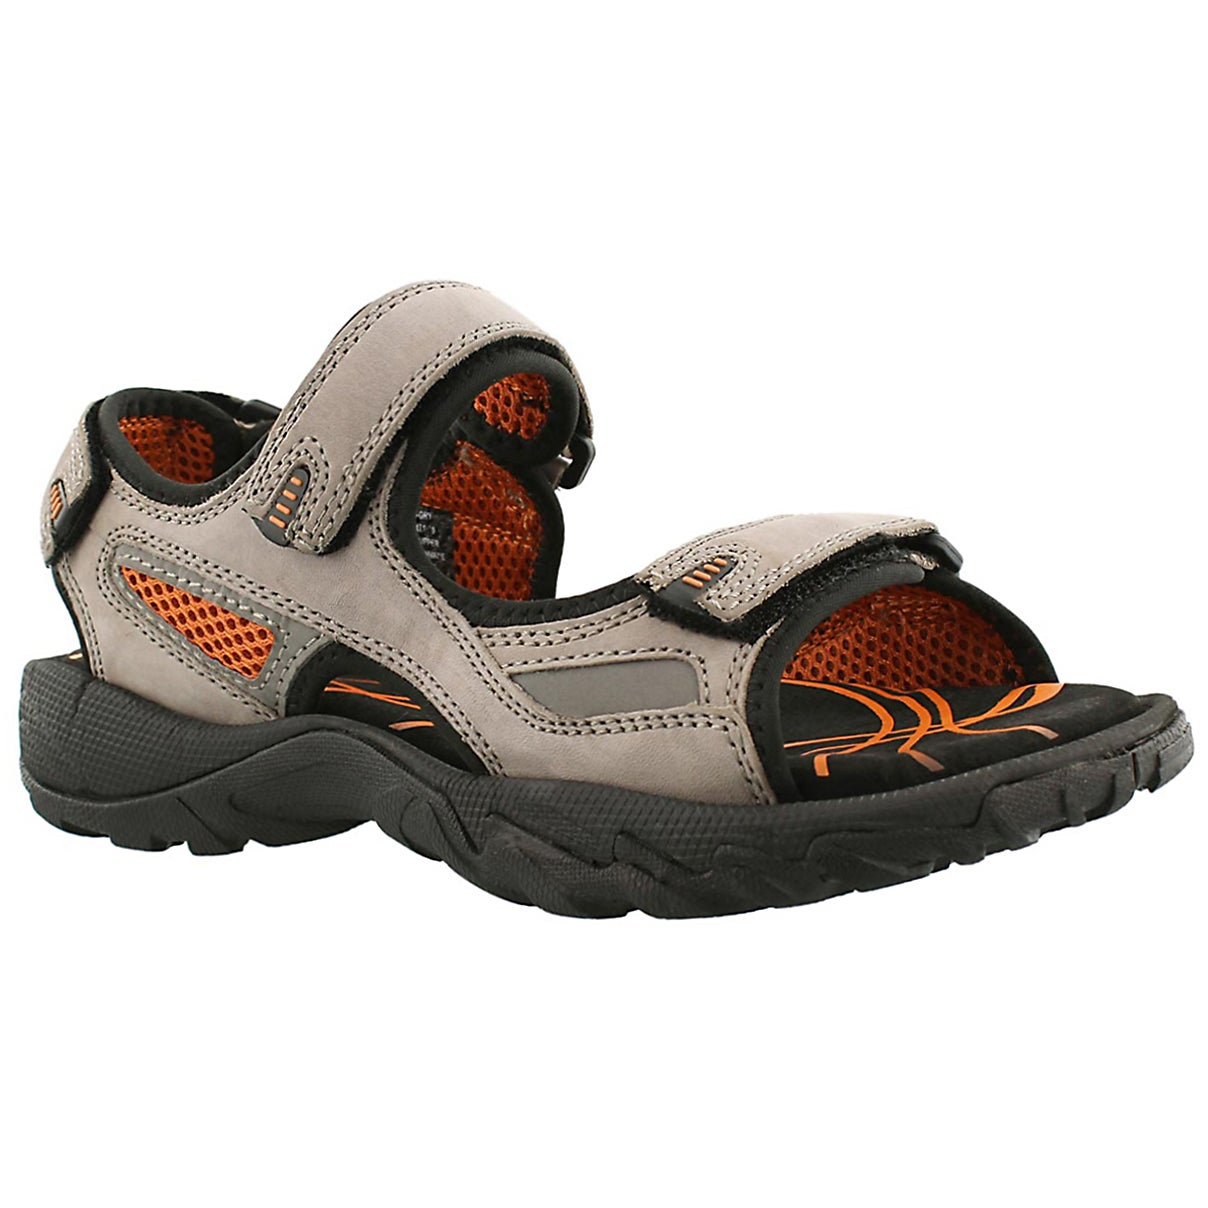 Men's LUCIUS grey 3 strap sport sandals